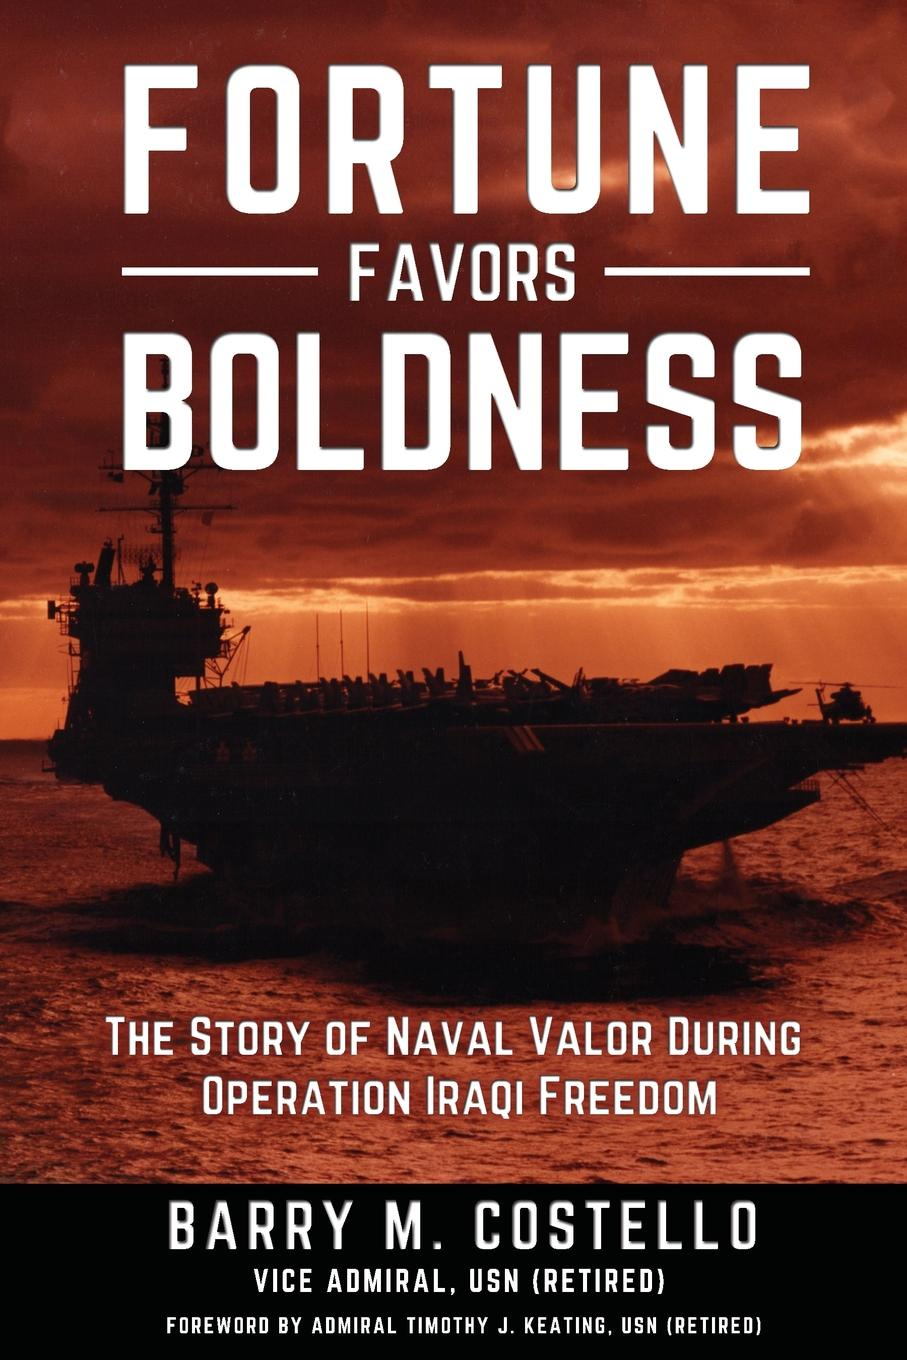 Barry M. Costello FORTUNE FAVORS BOLDNESS. The Story of Naval Valor During Operation Iraqi Freedom malcolm kemp extreme events robust portfolio construction in the presence of fat tails isbn 9780470976791